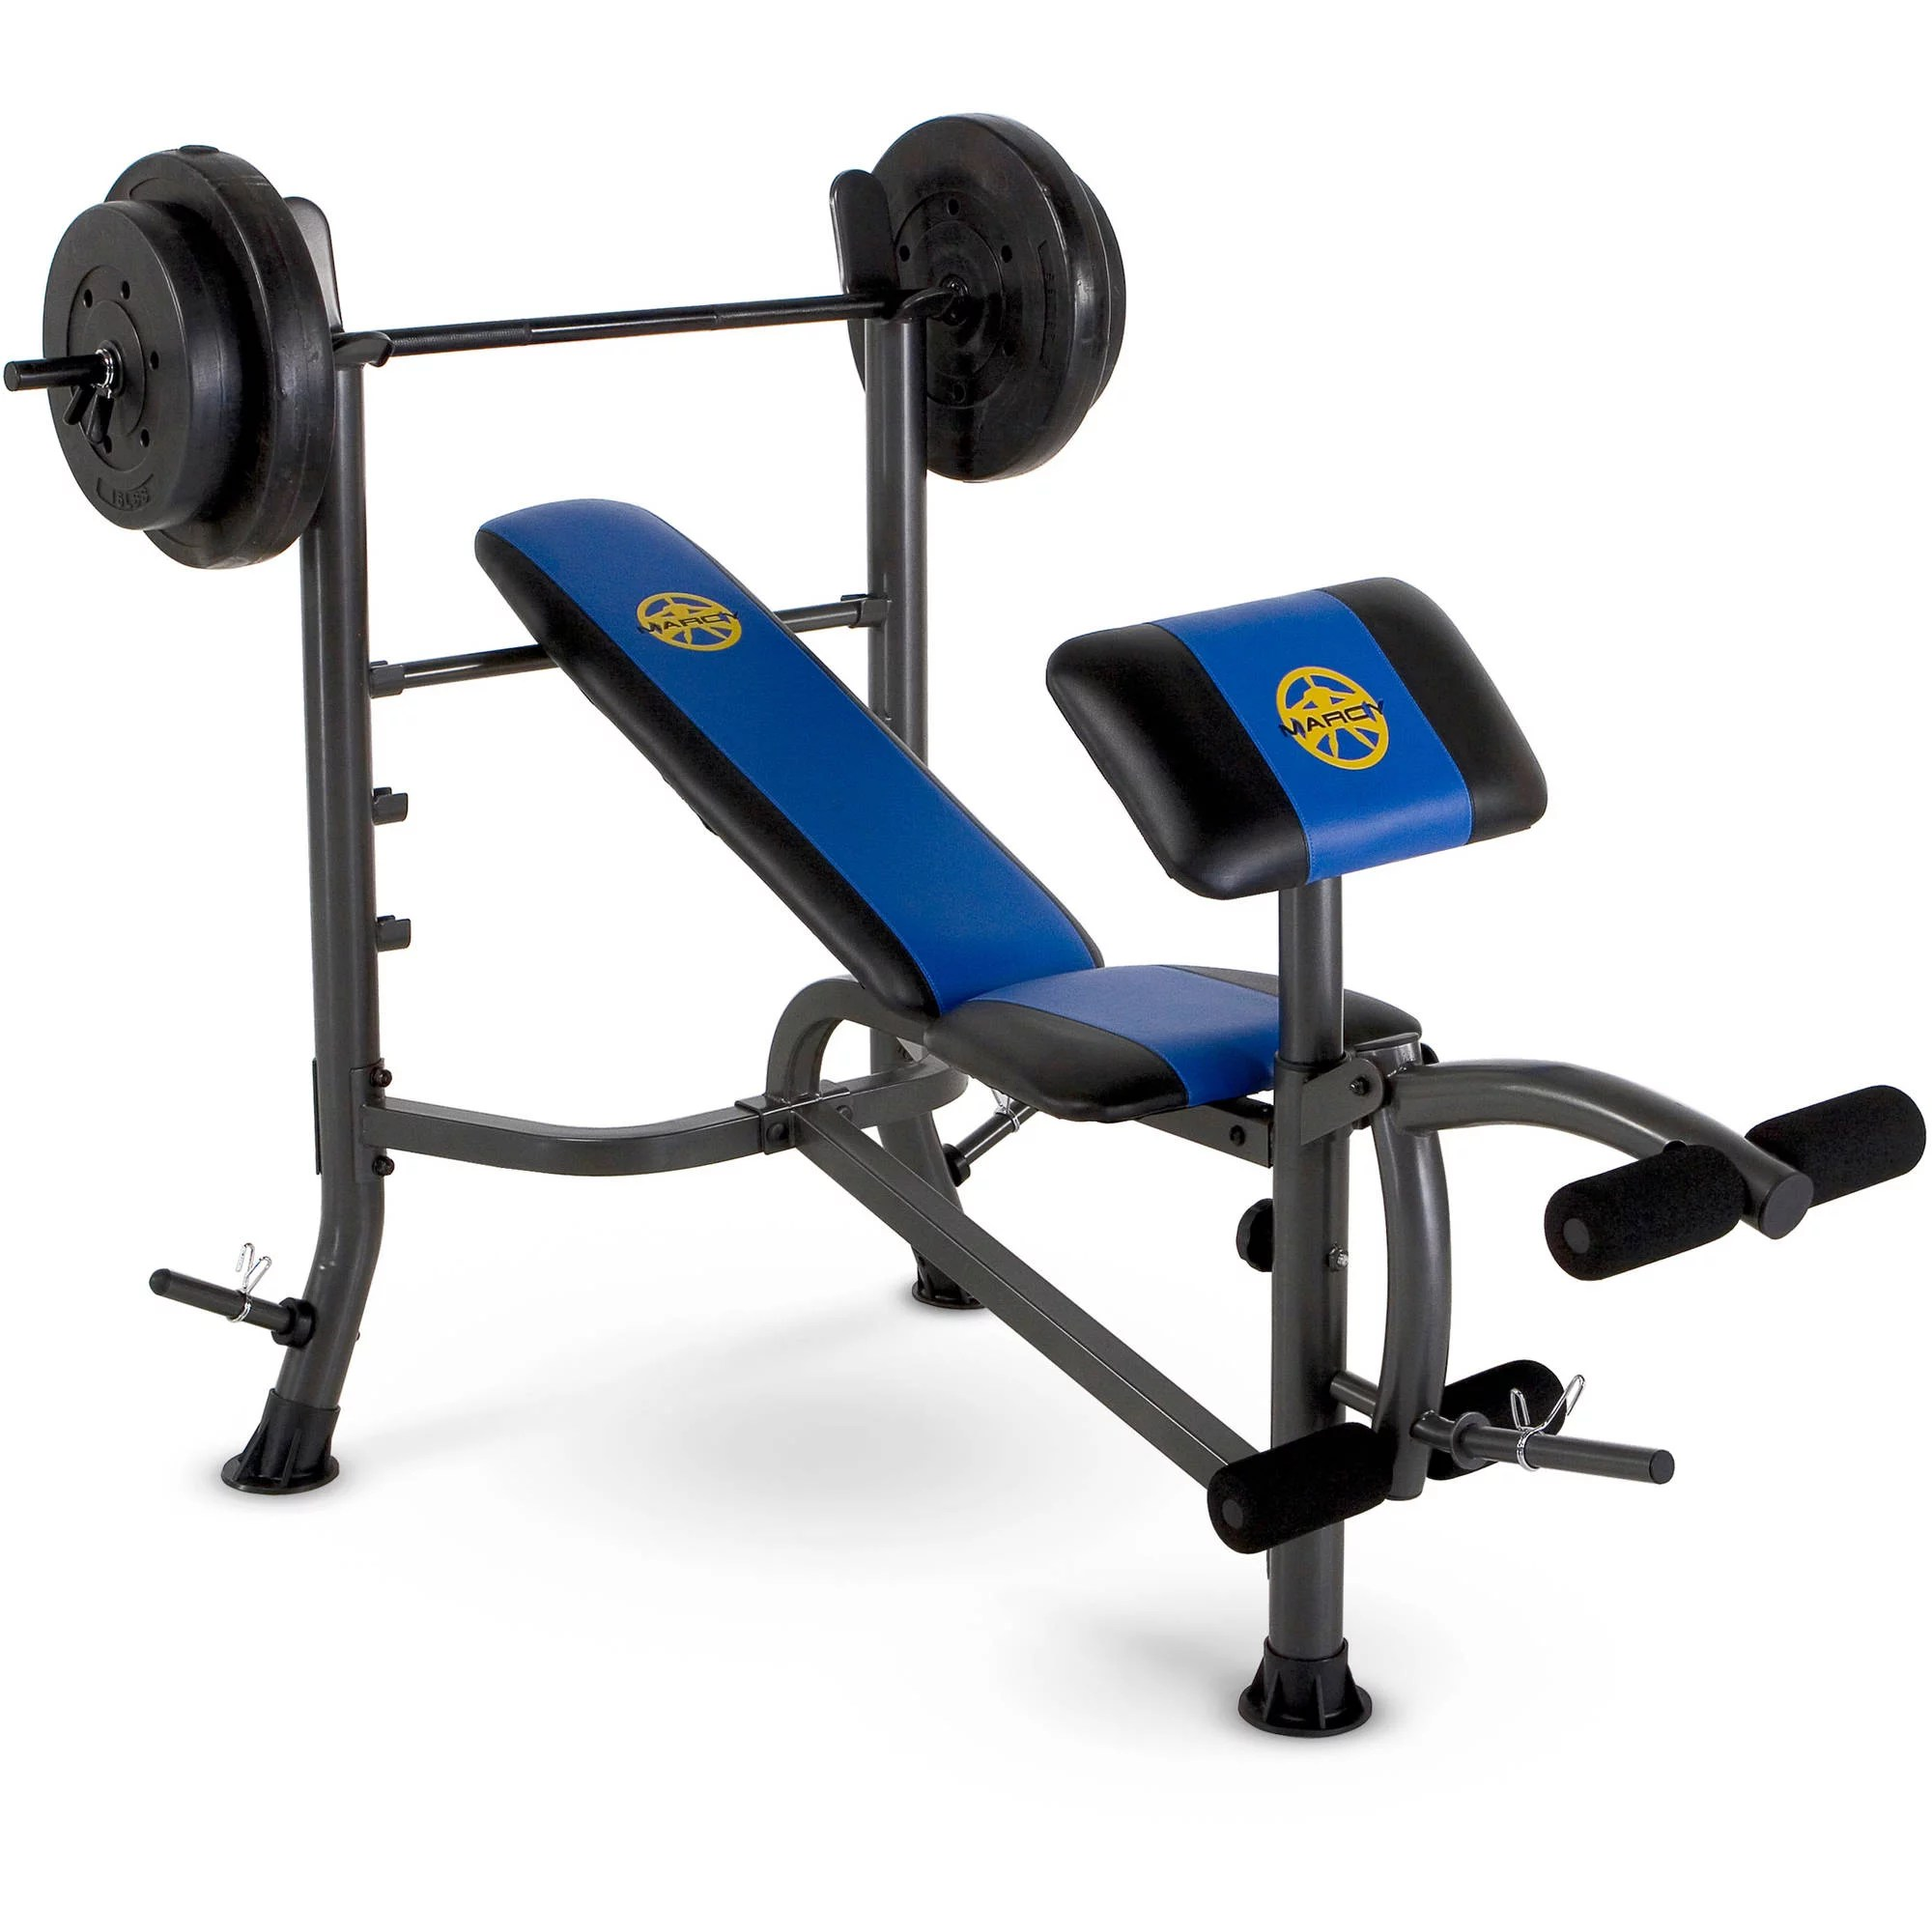 Standard Bench Workout Fitness Chair Seat Home Gym Benches